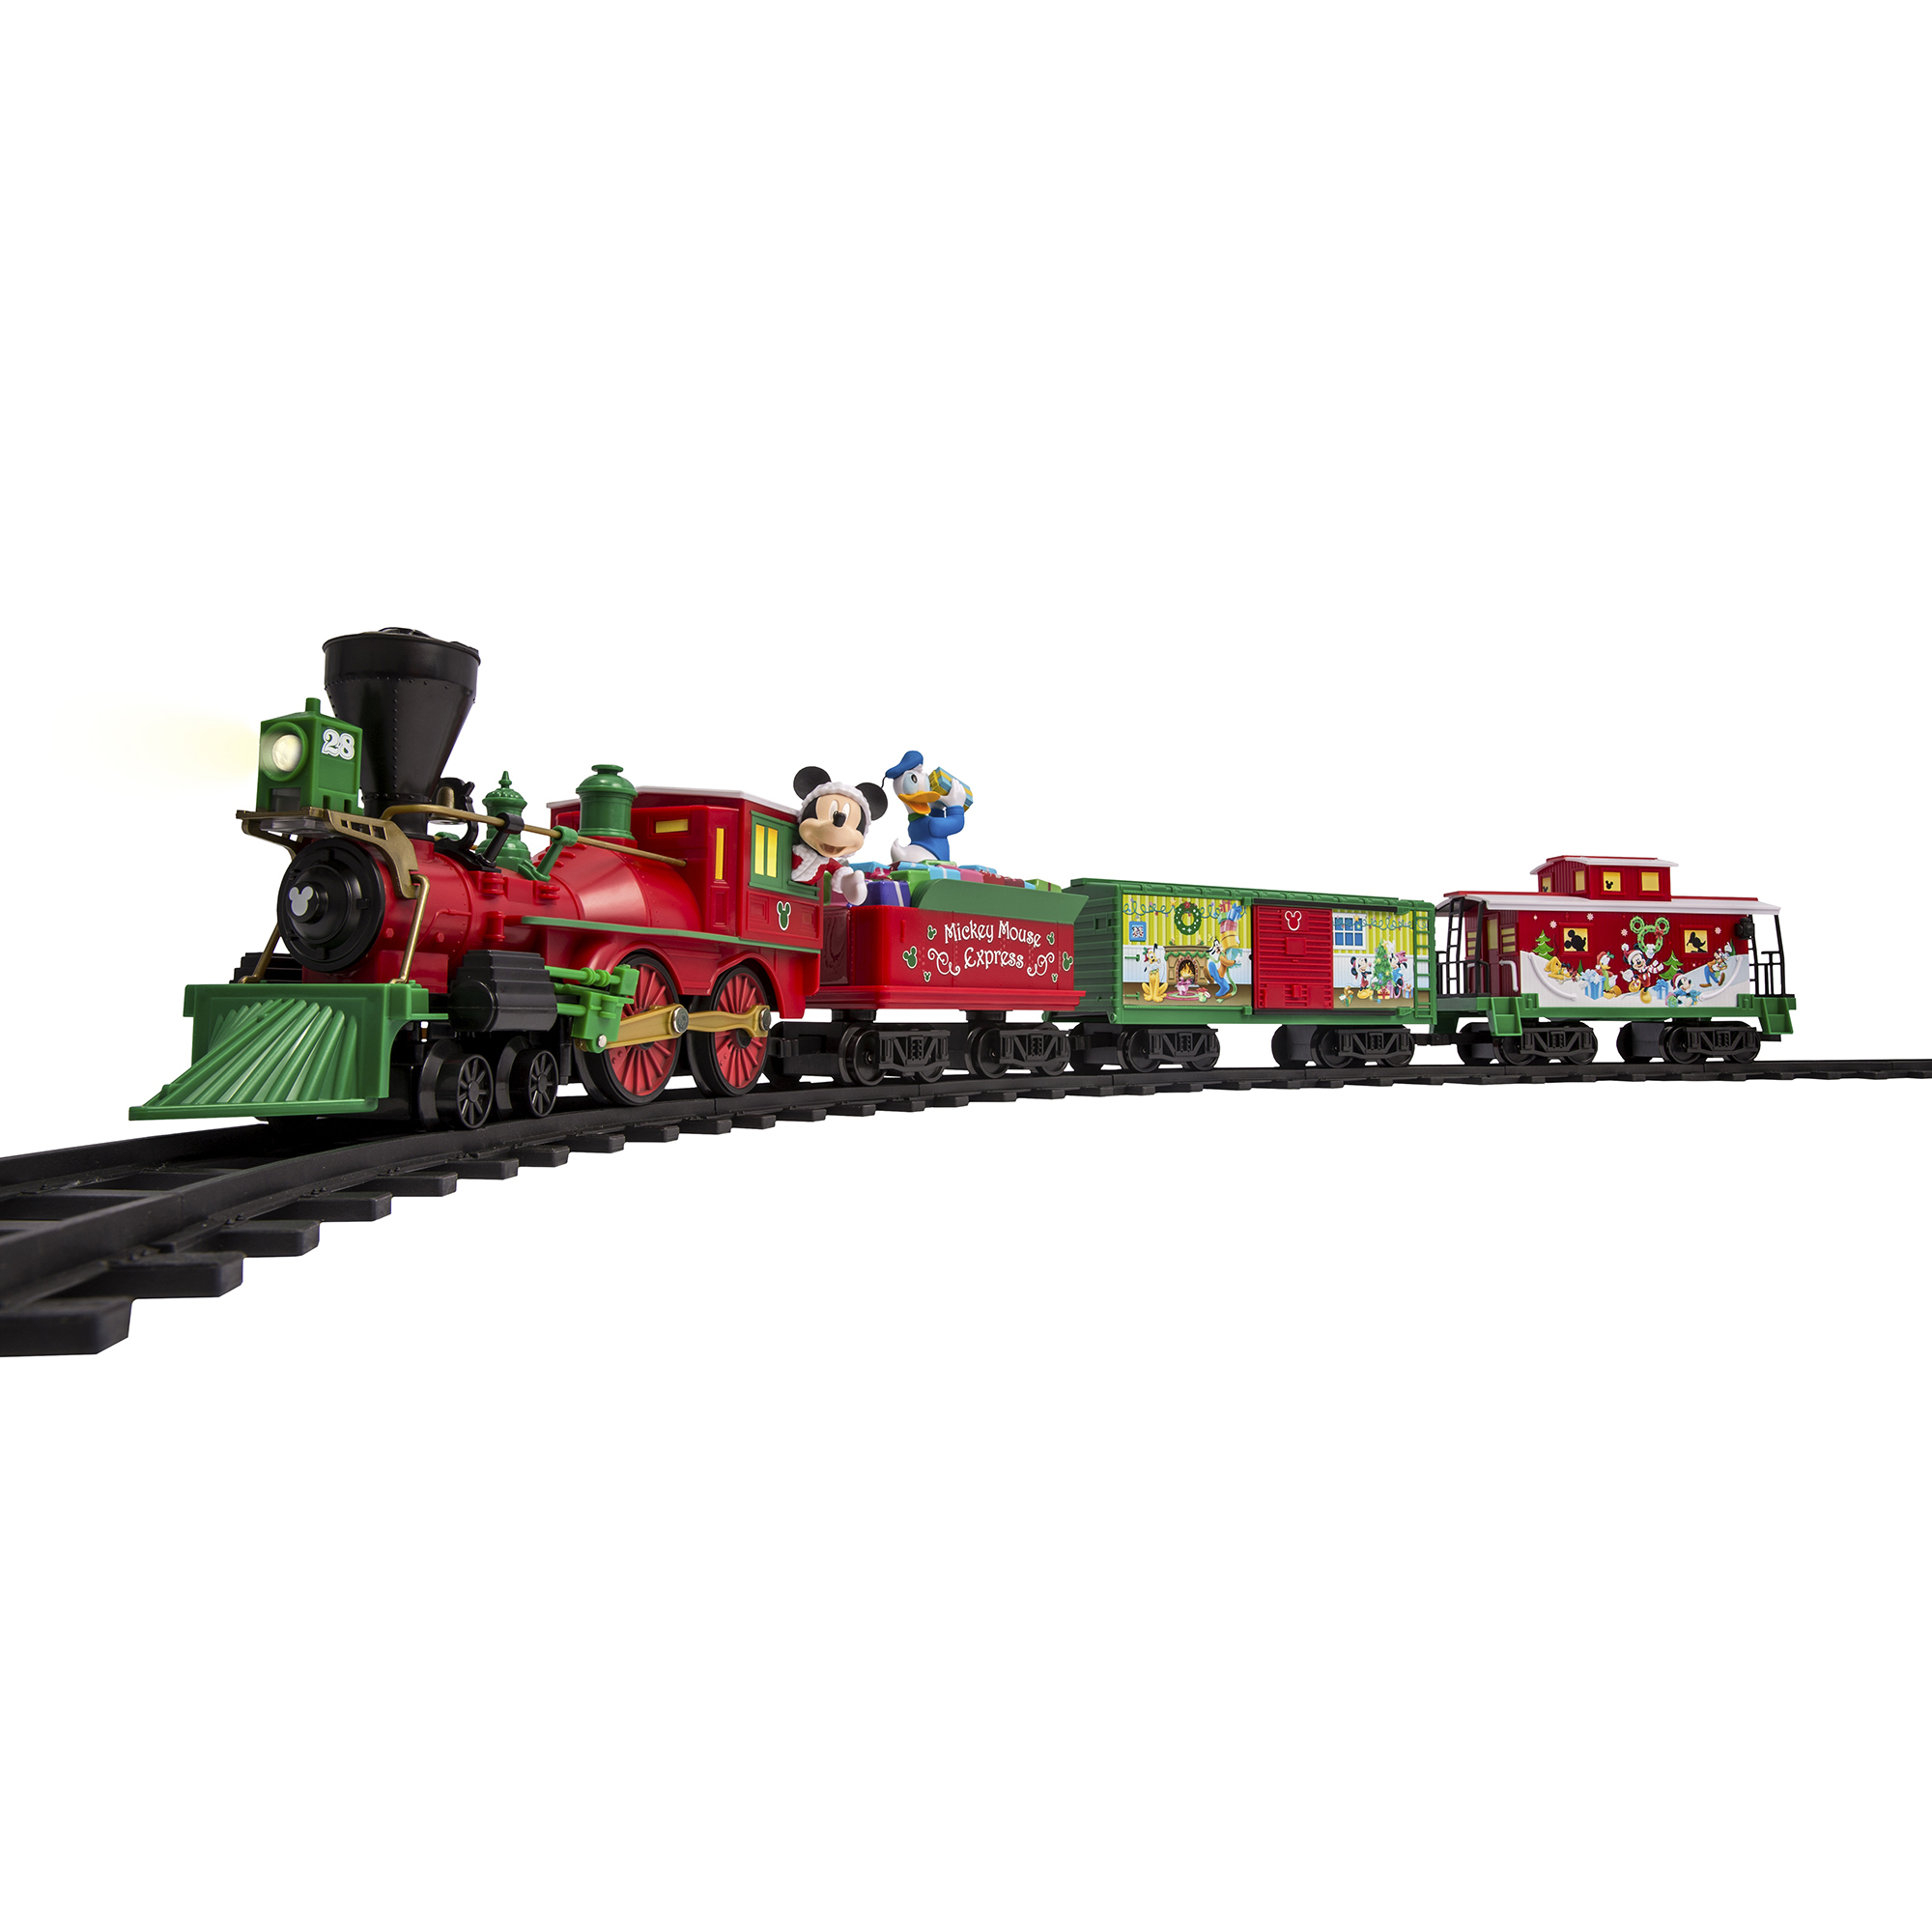 Christmas Train.Details About Lionel Trains Mickey Mouse Express Disney Ready To Play Christmas Train Set